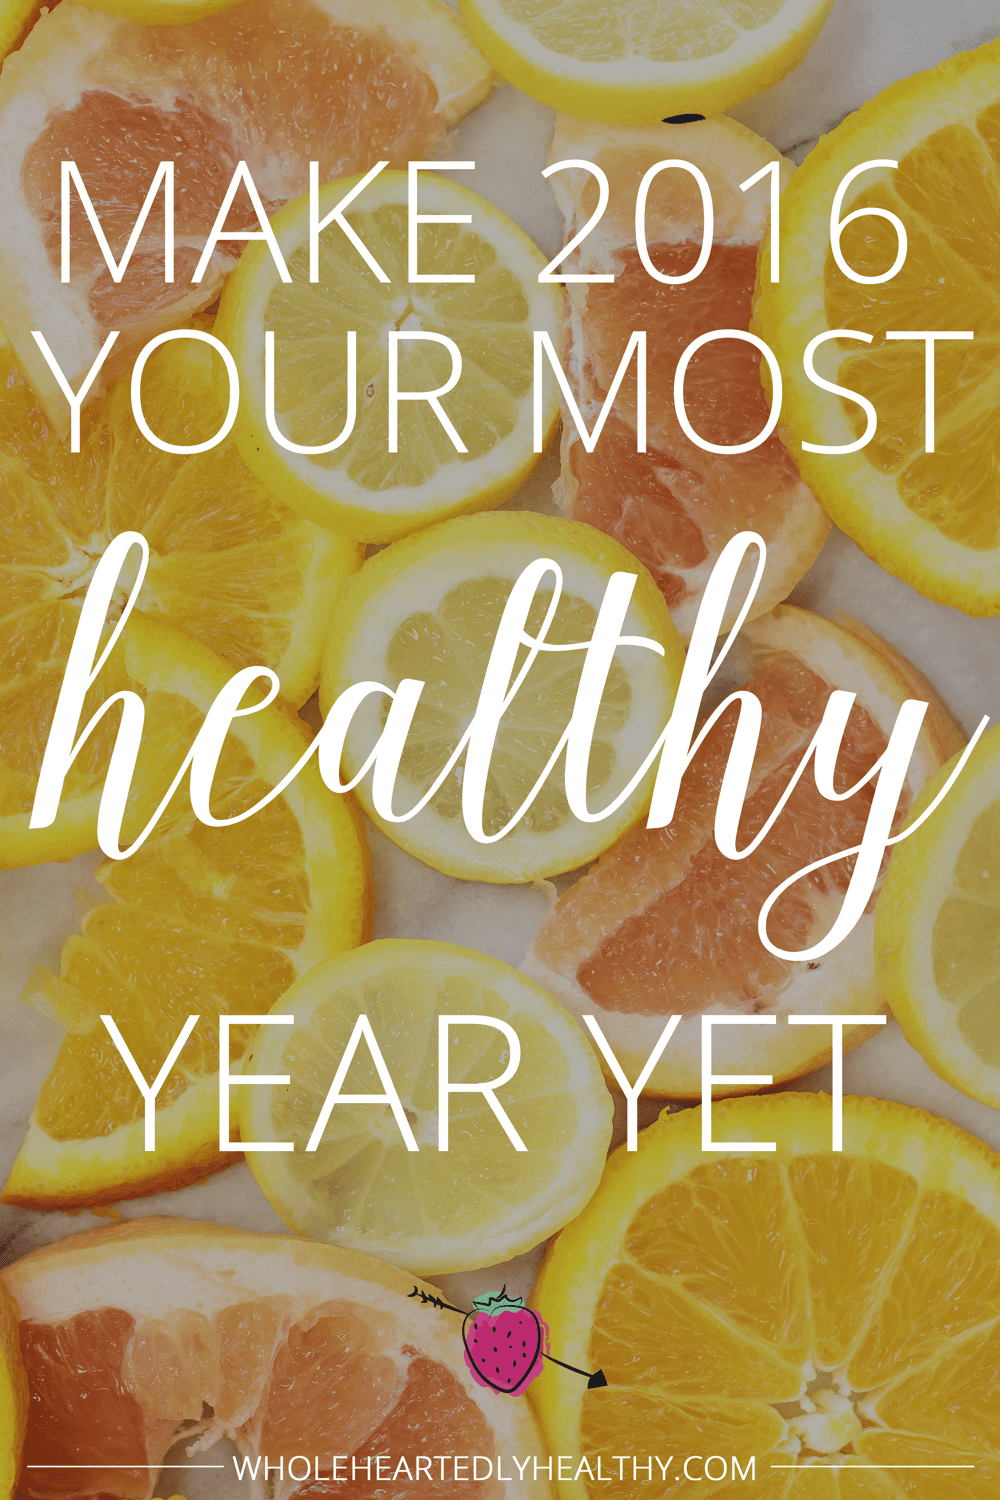 Make 2016 your most healthy year yet